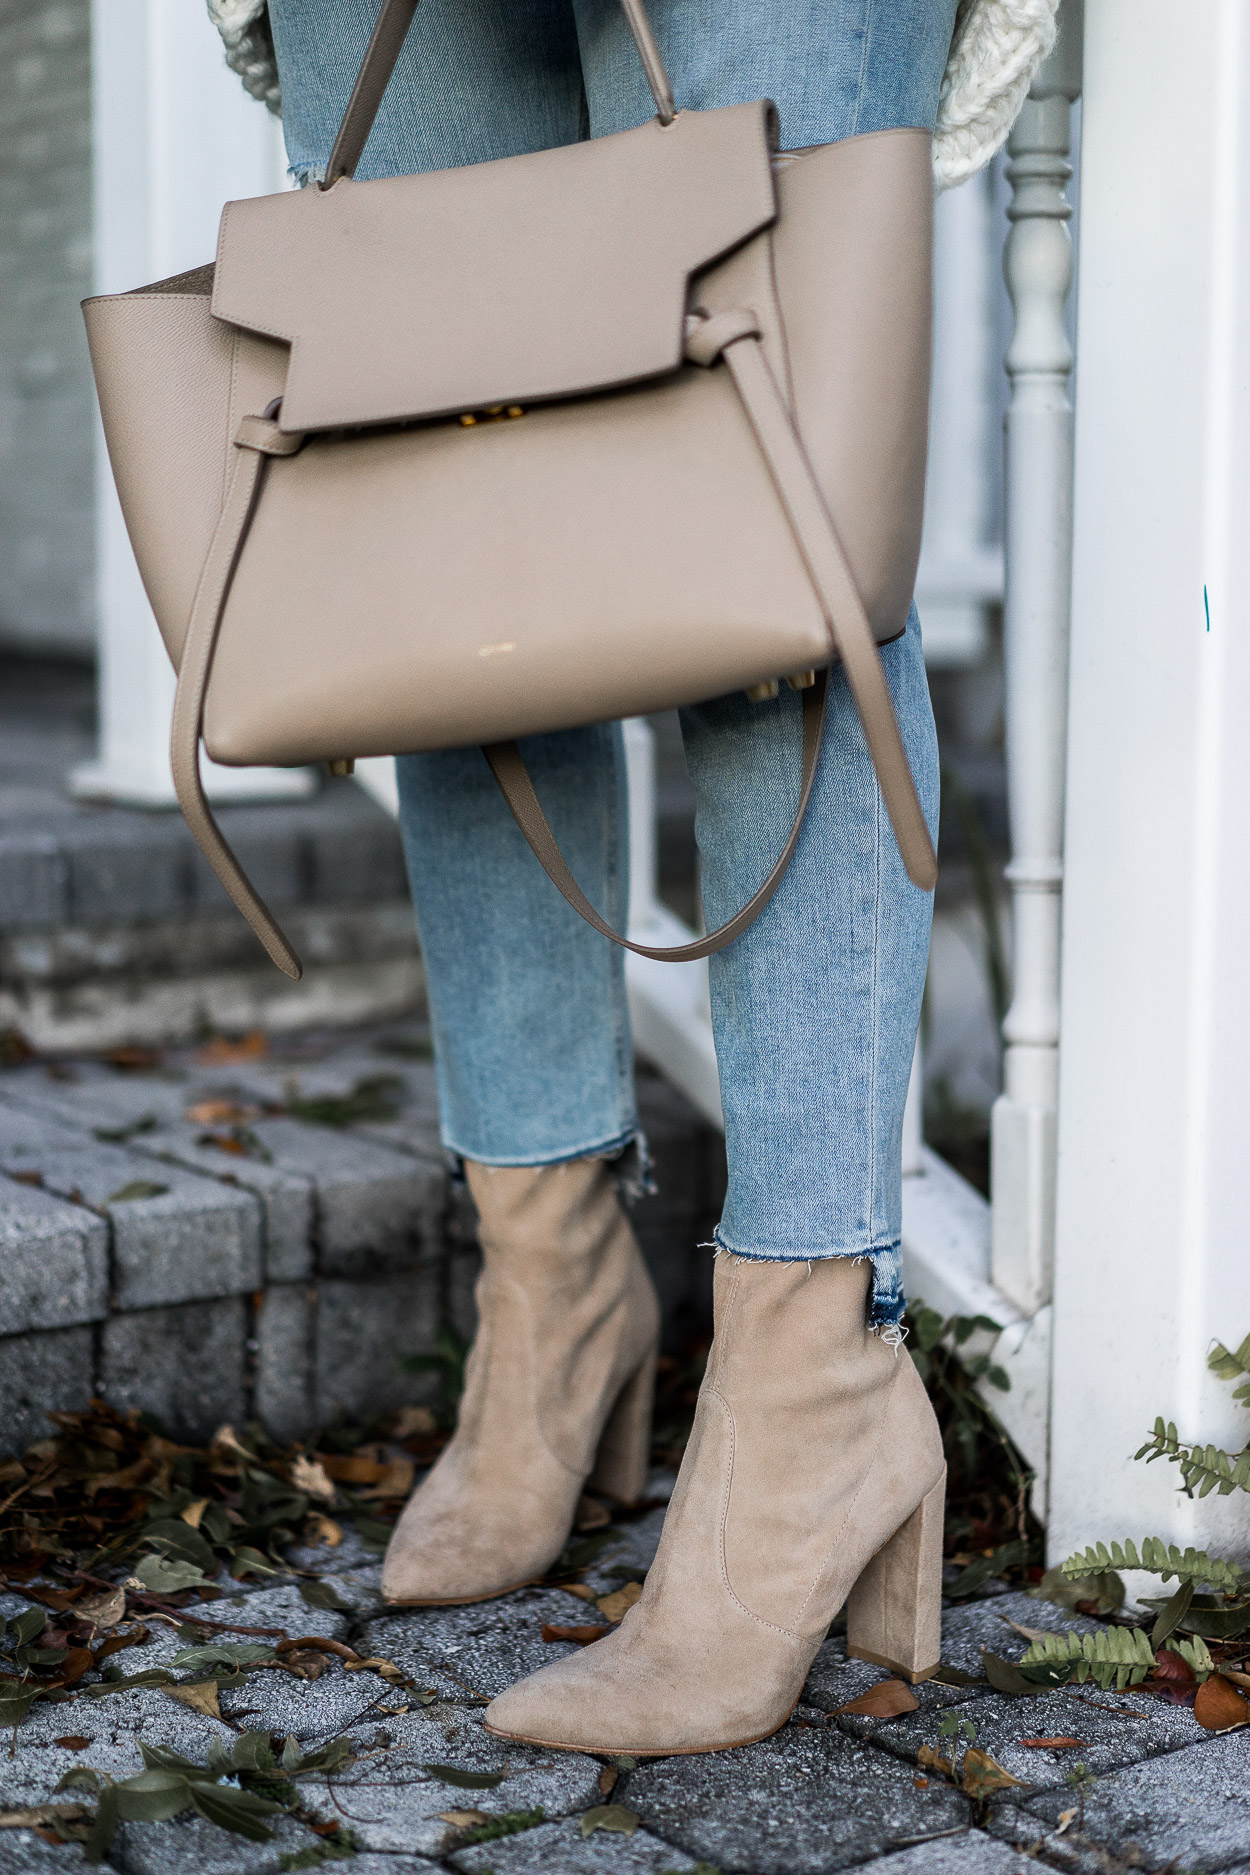 Stuart Weitzman nude Clinger booties are styled with Celine belt bag by fashion blogger Amanda